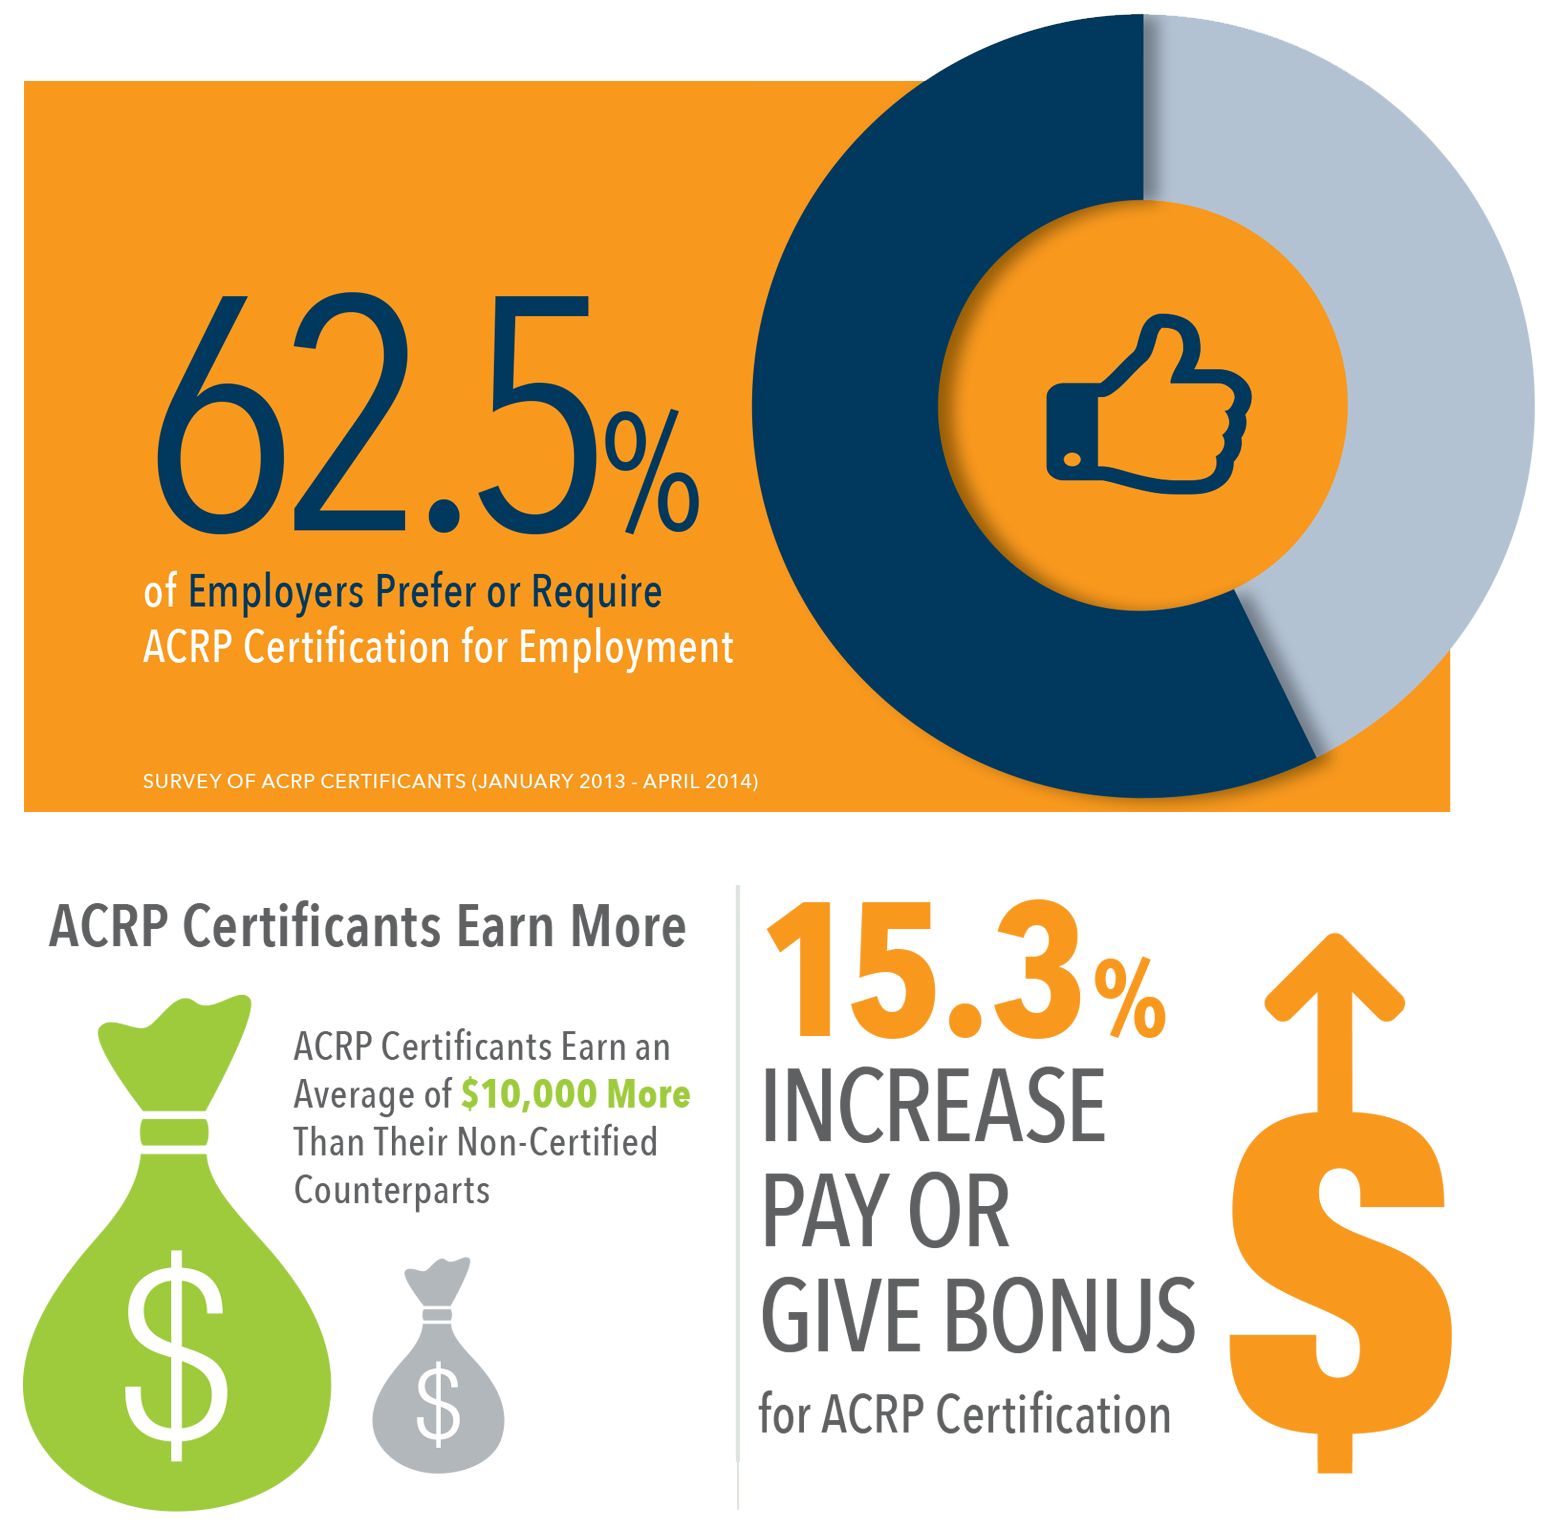 ACRP Certificants Earn More